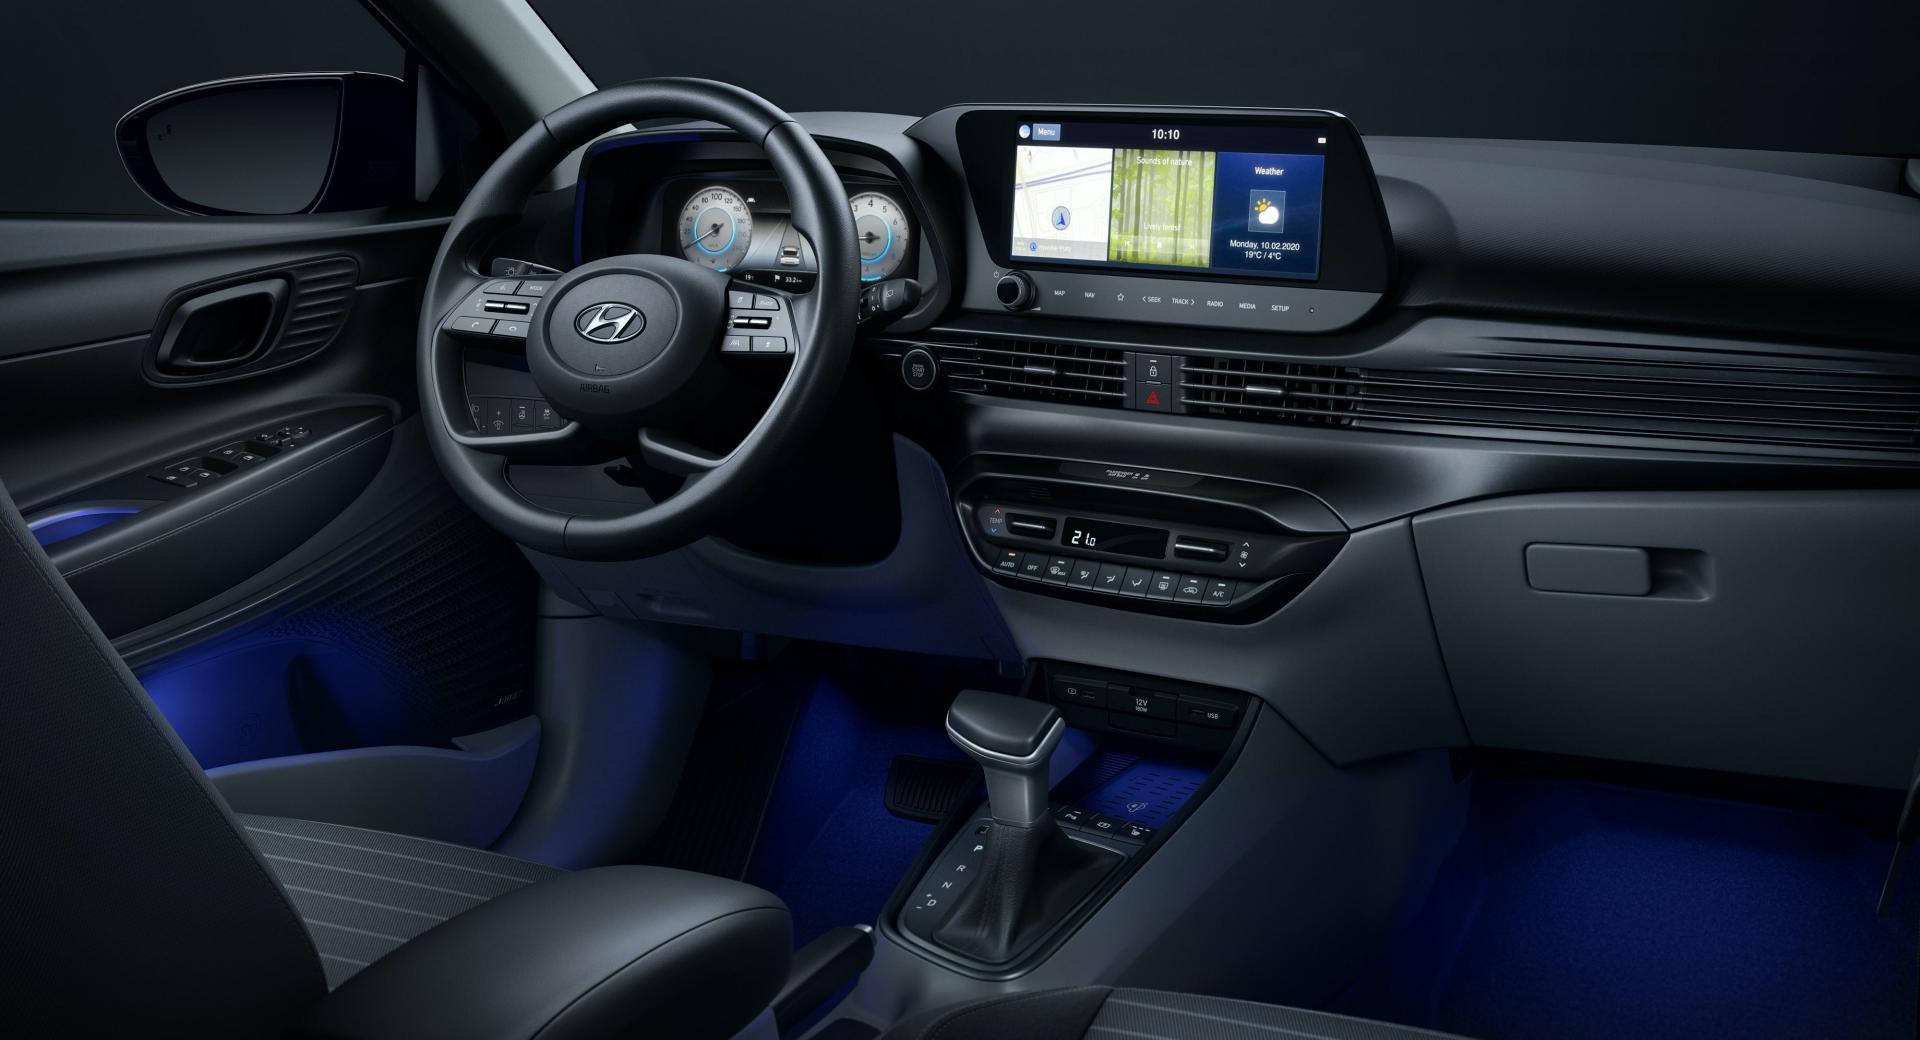 Here's Our First Look Inside The 2020 Hyundai i20 - CarScoops